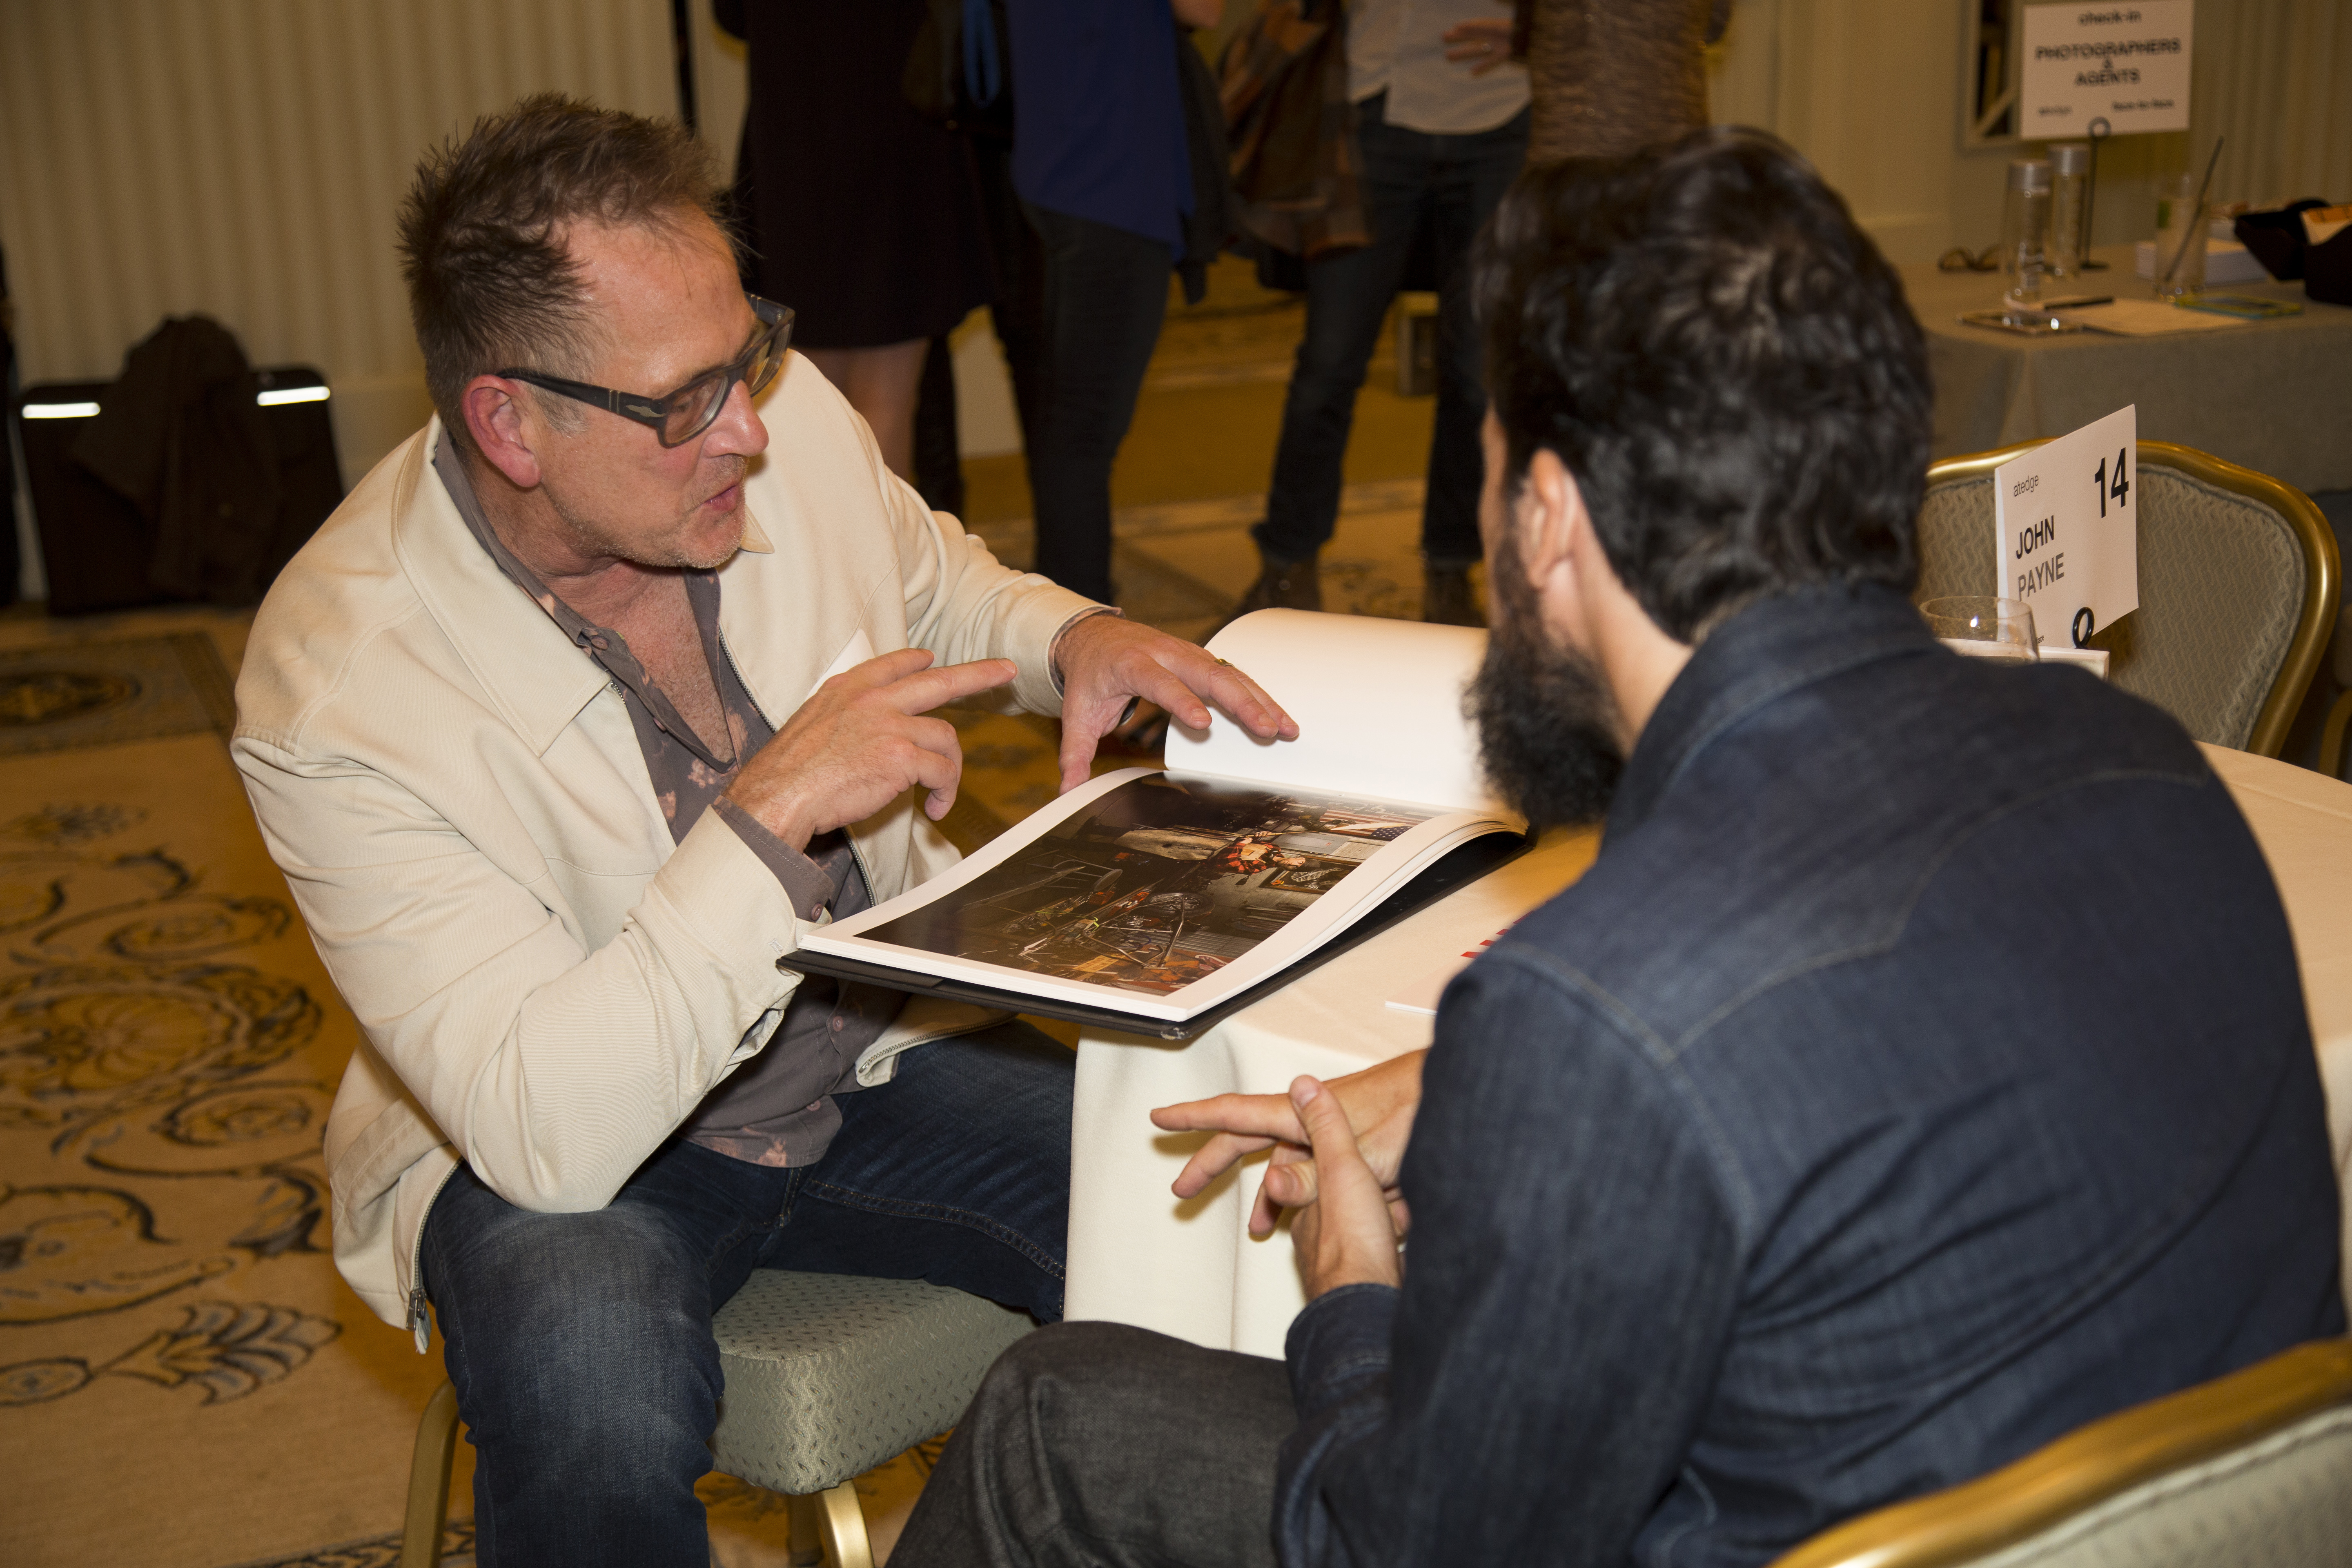 Saatchi Creative Director John Payne face-to-face with JJ Sulin.